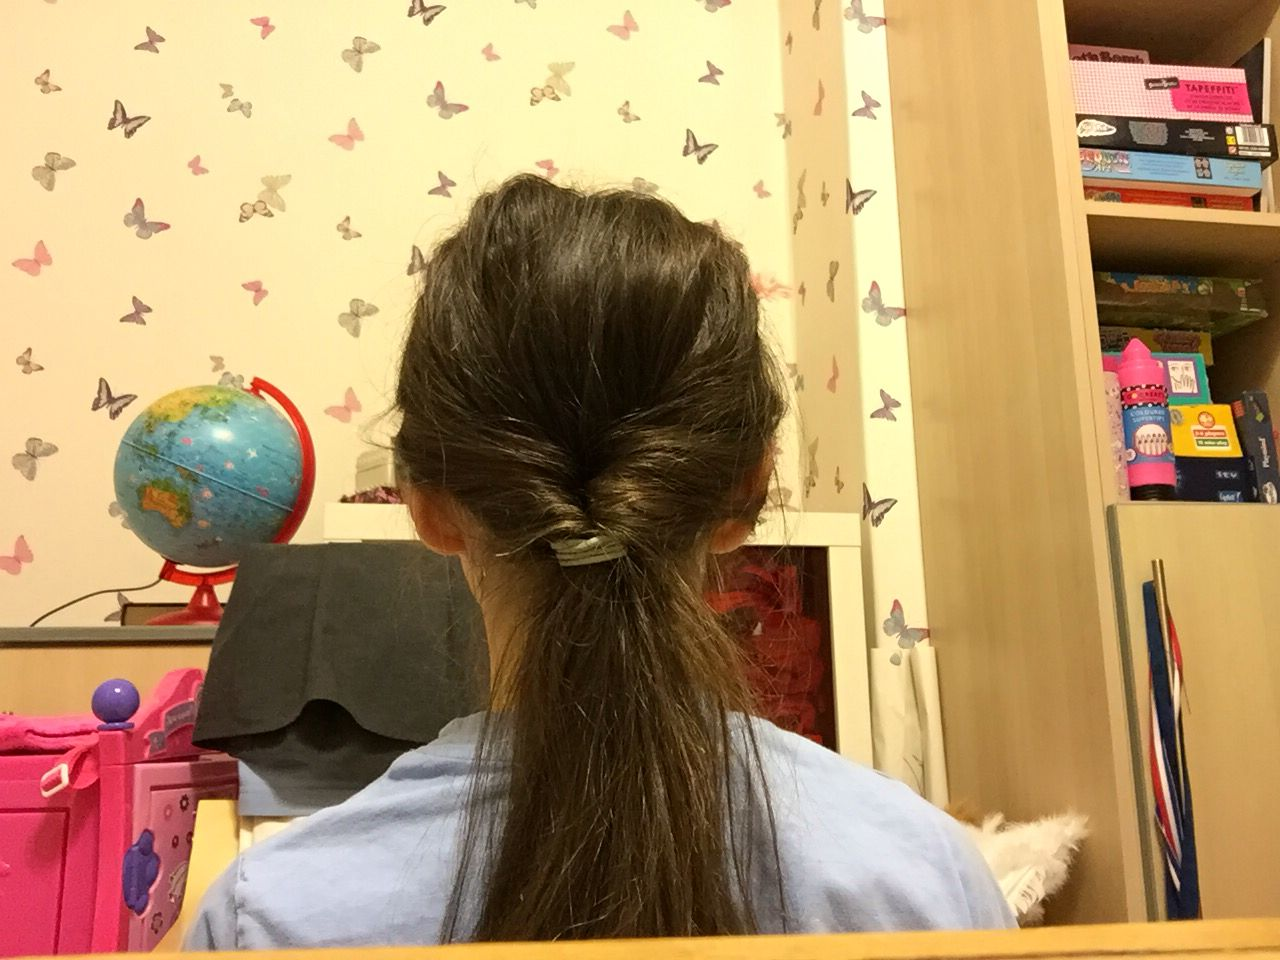 3. Twist leftover hair through the separated hair, Enjoy this easy and fun hairstyle!